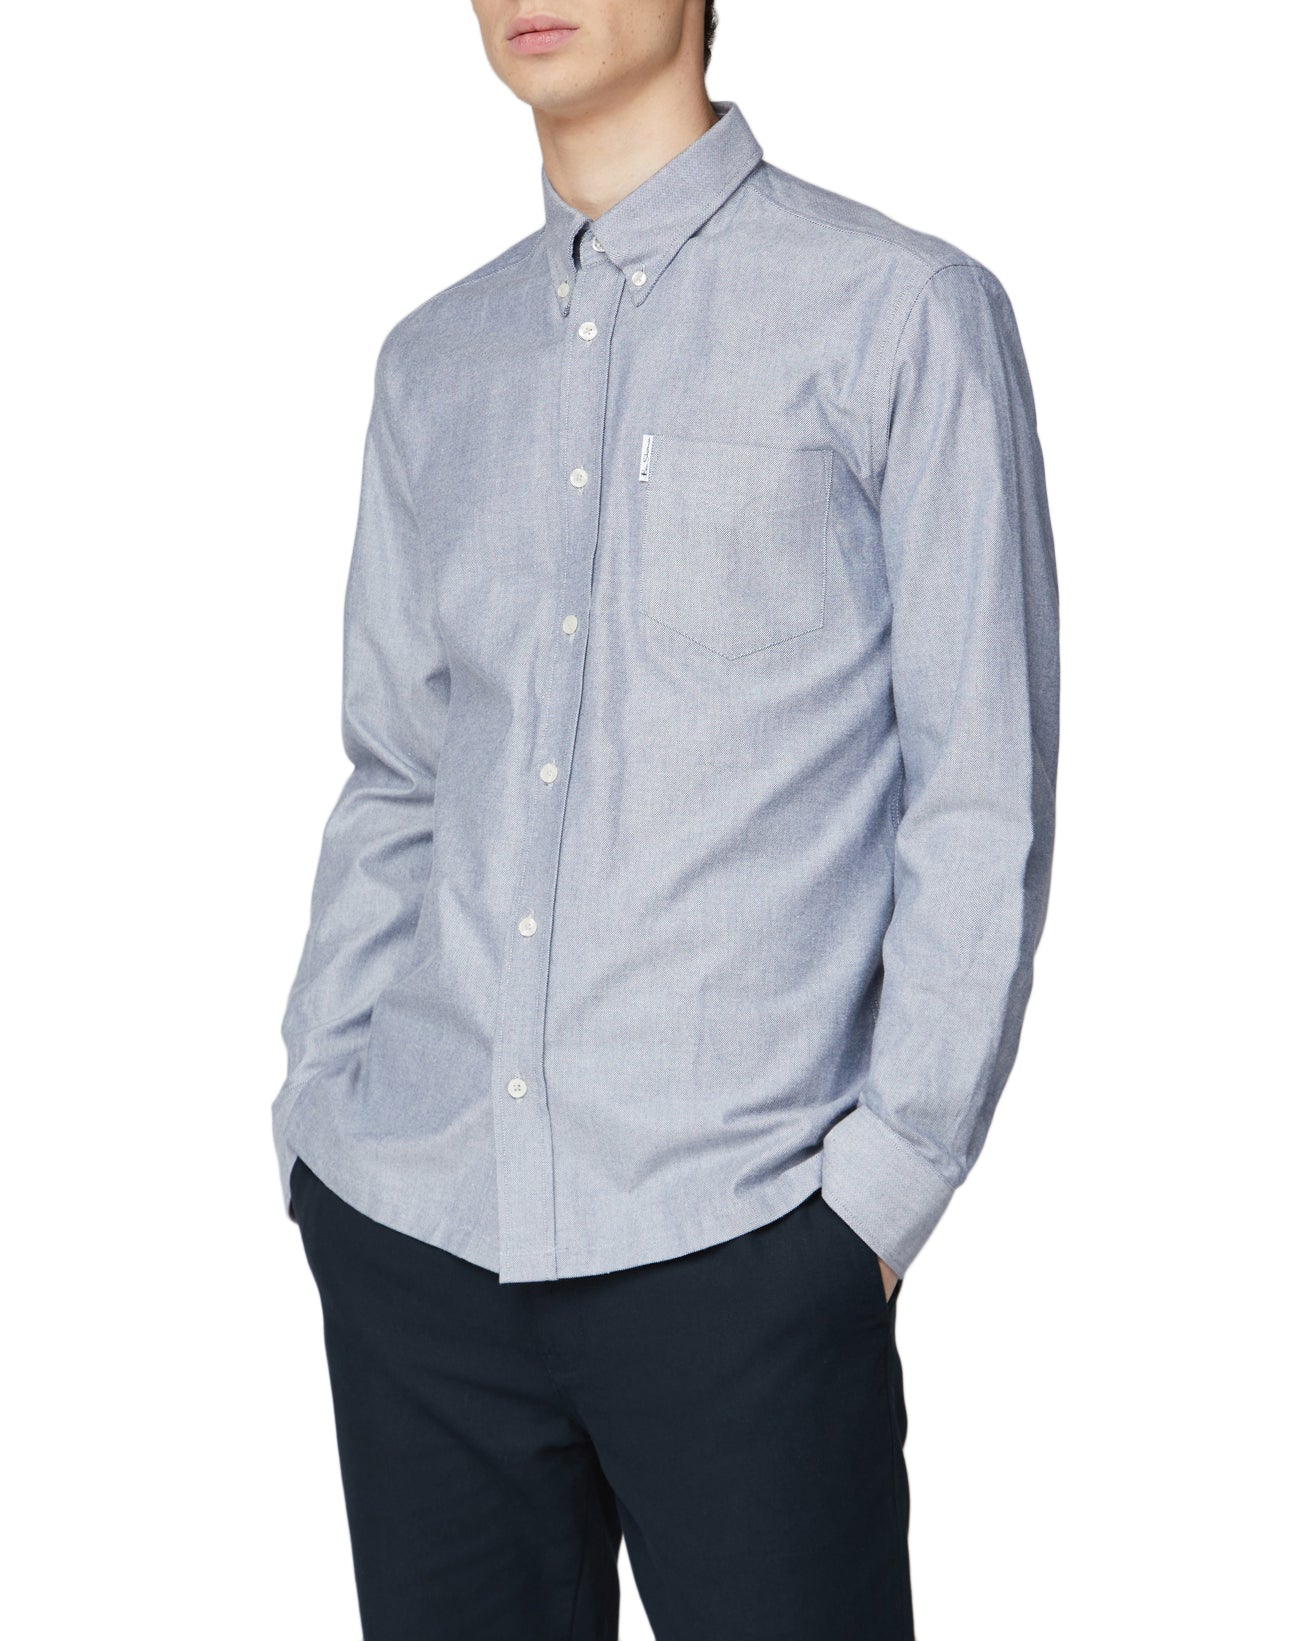 Long-Sleeve Archive Benny Shirt - Navy